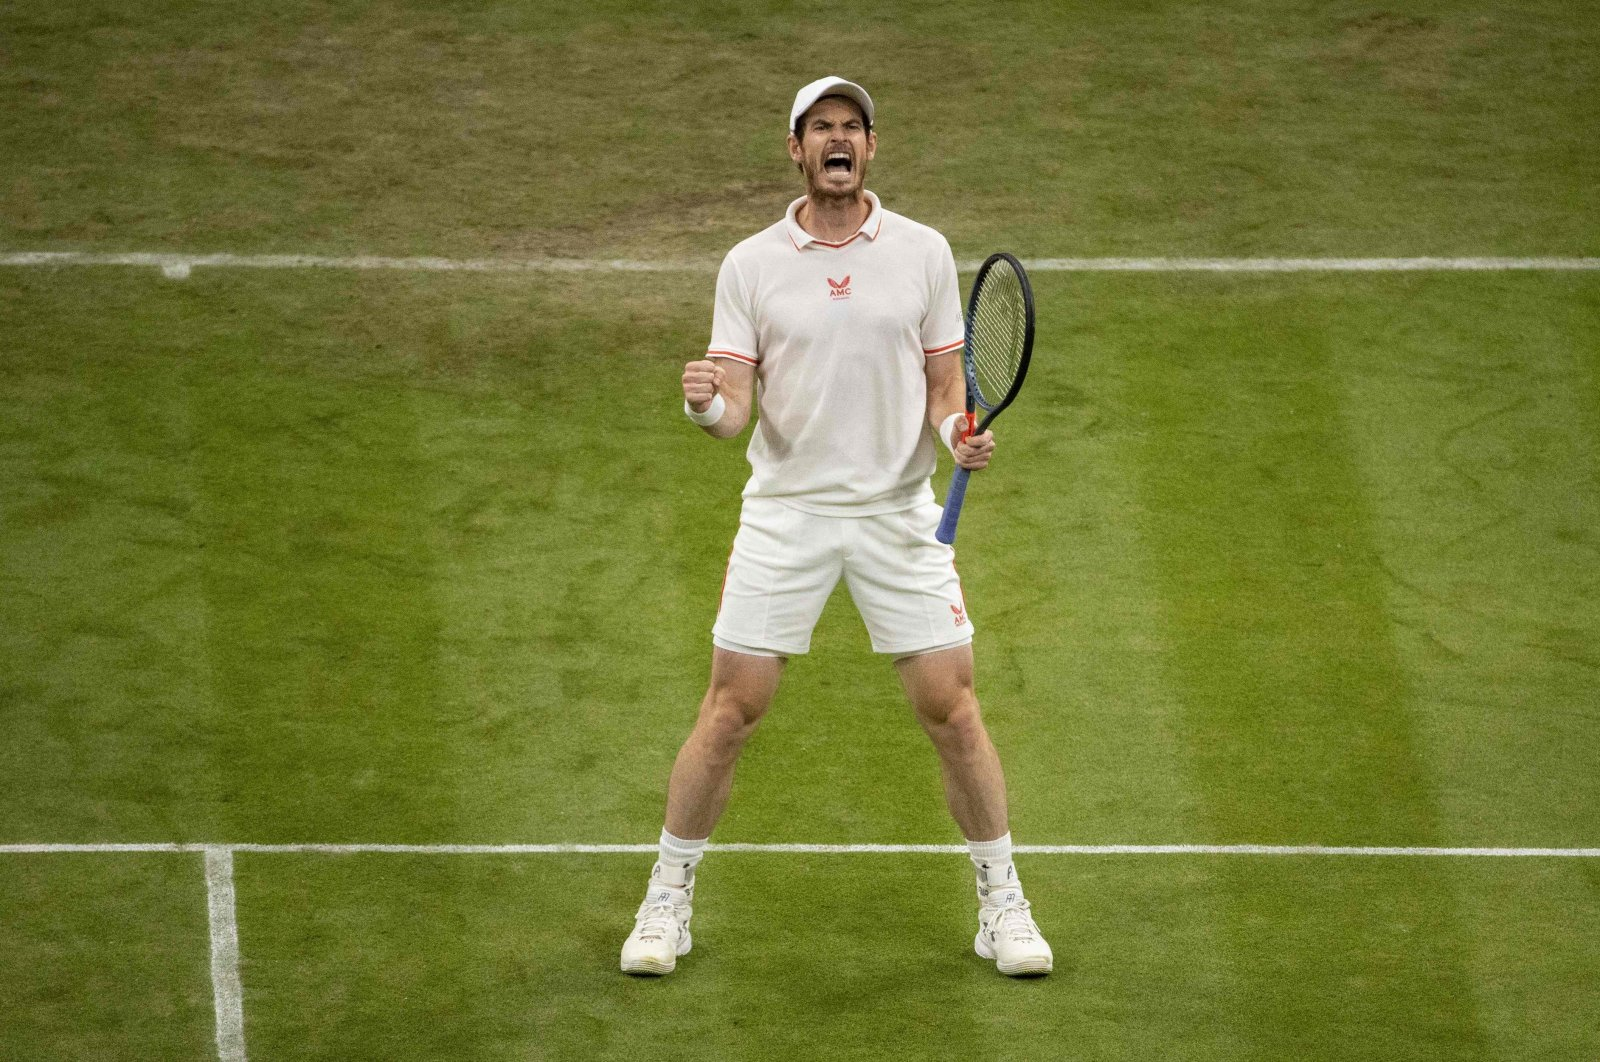 Britain's Andy Murray wins a point against Germany's Oscar Otte during the 2021 Wimbledon men's singles second-round match at The All England Tennis Club in Wimbledon, southwest London, England, June 30, 2021. (AFP Photo)